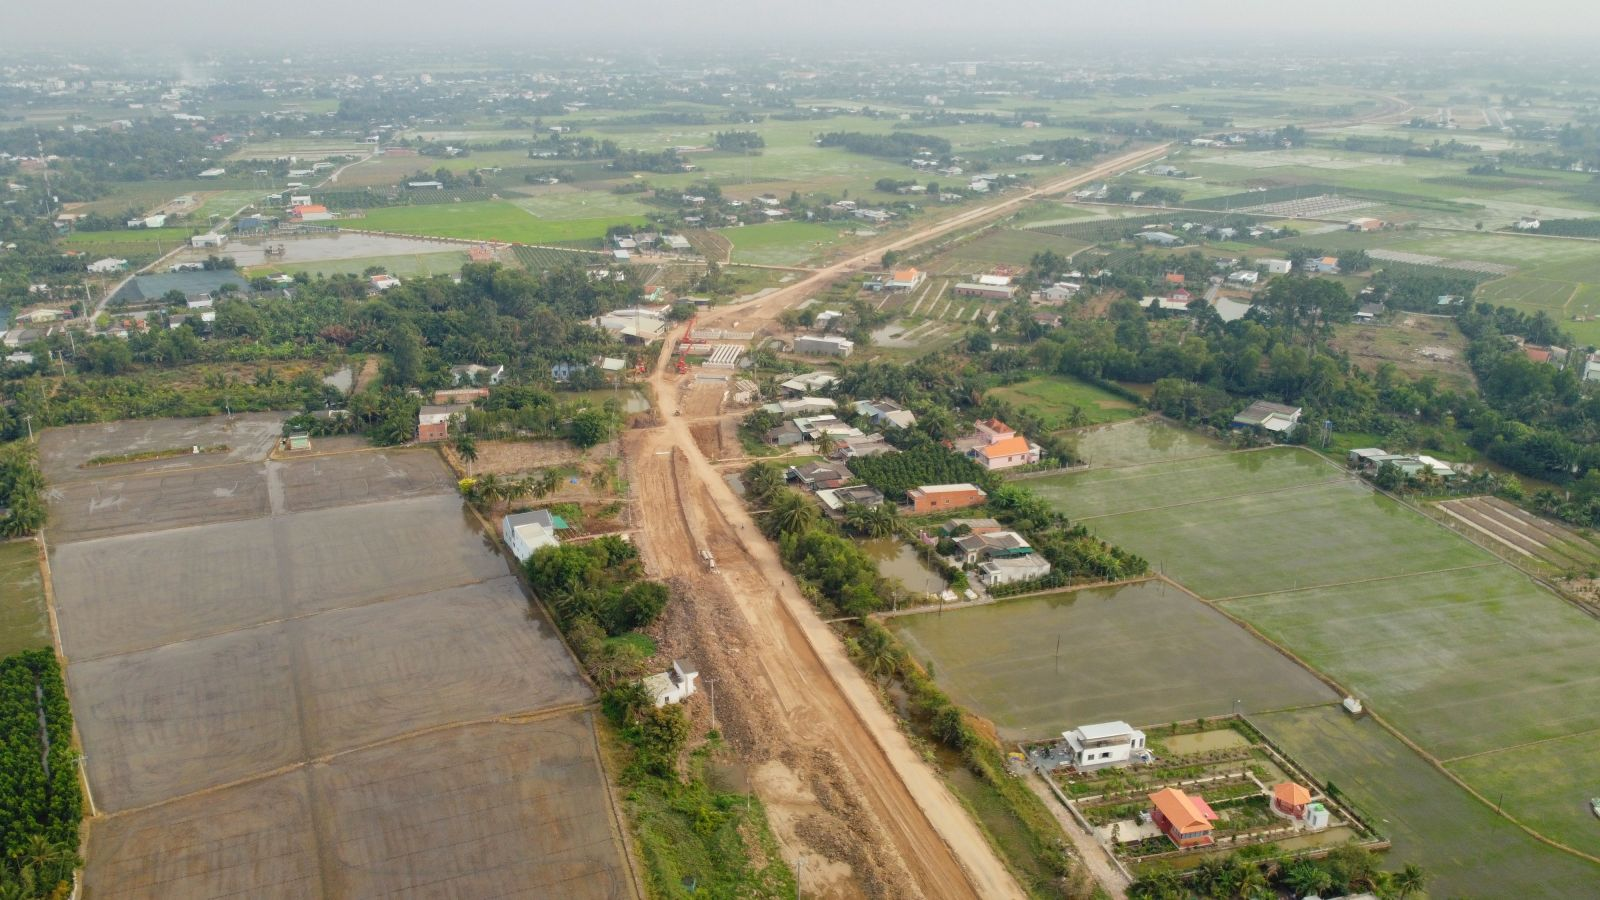 The section of Phan Van Tuan connecting Nguyen Tan Chinh is 6 kilometers long, designed with 4 lanes for cars, is in the process of leveling. This road is invested by the People's Committee of Tan An City